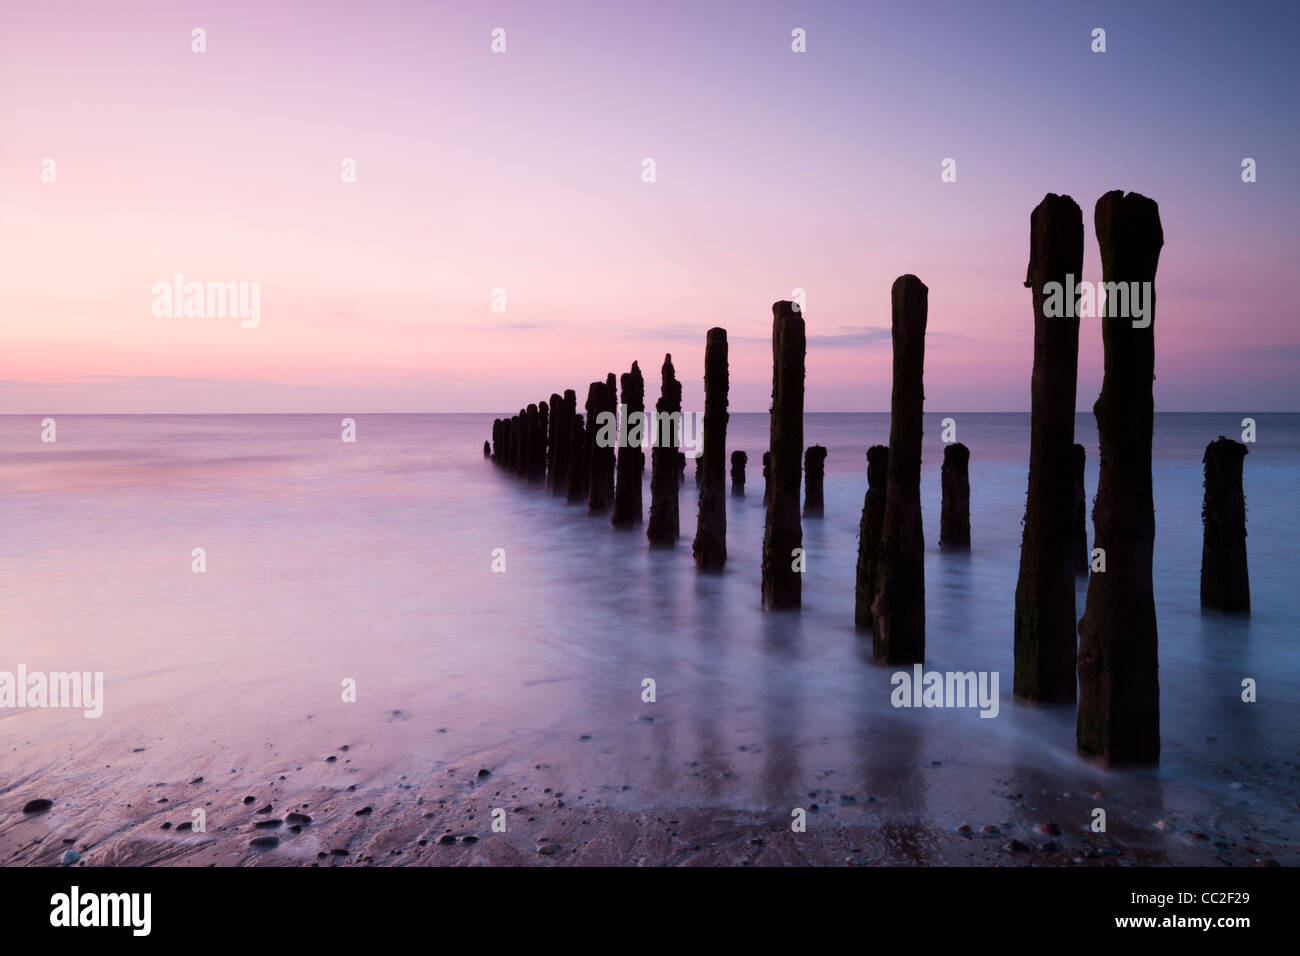 Old sea defences at dawn, smooth water from long exposure. - Stock Image